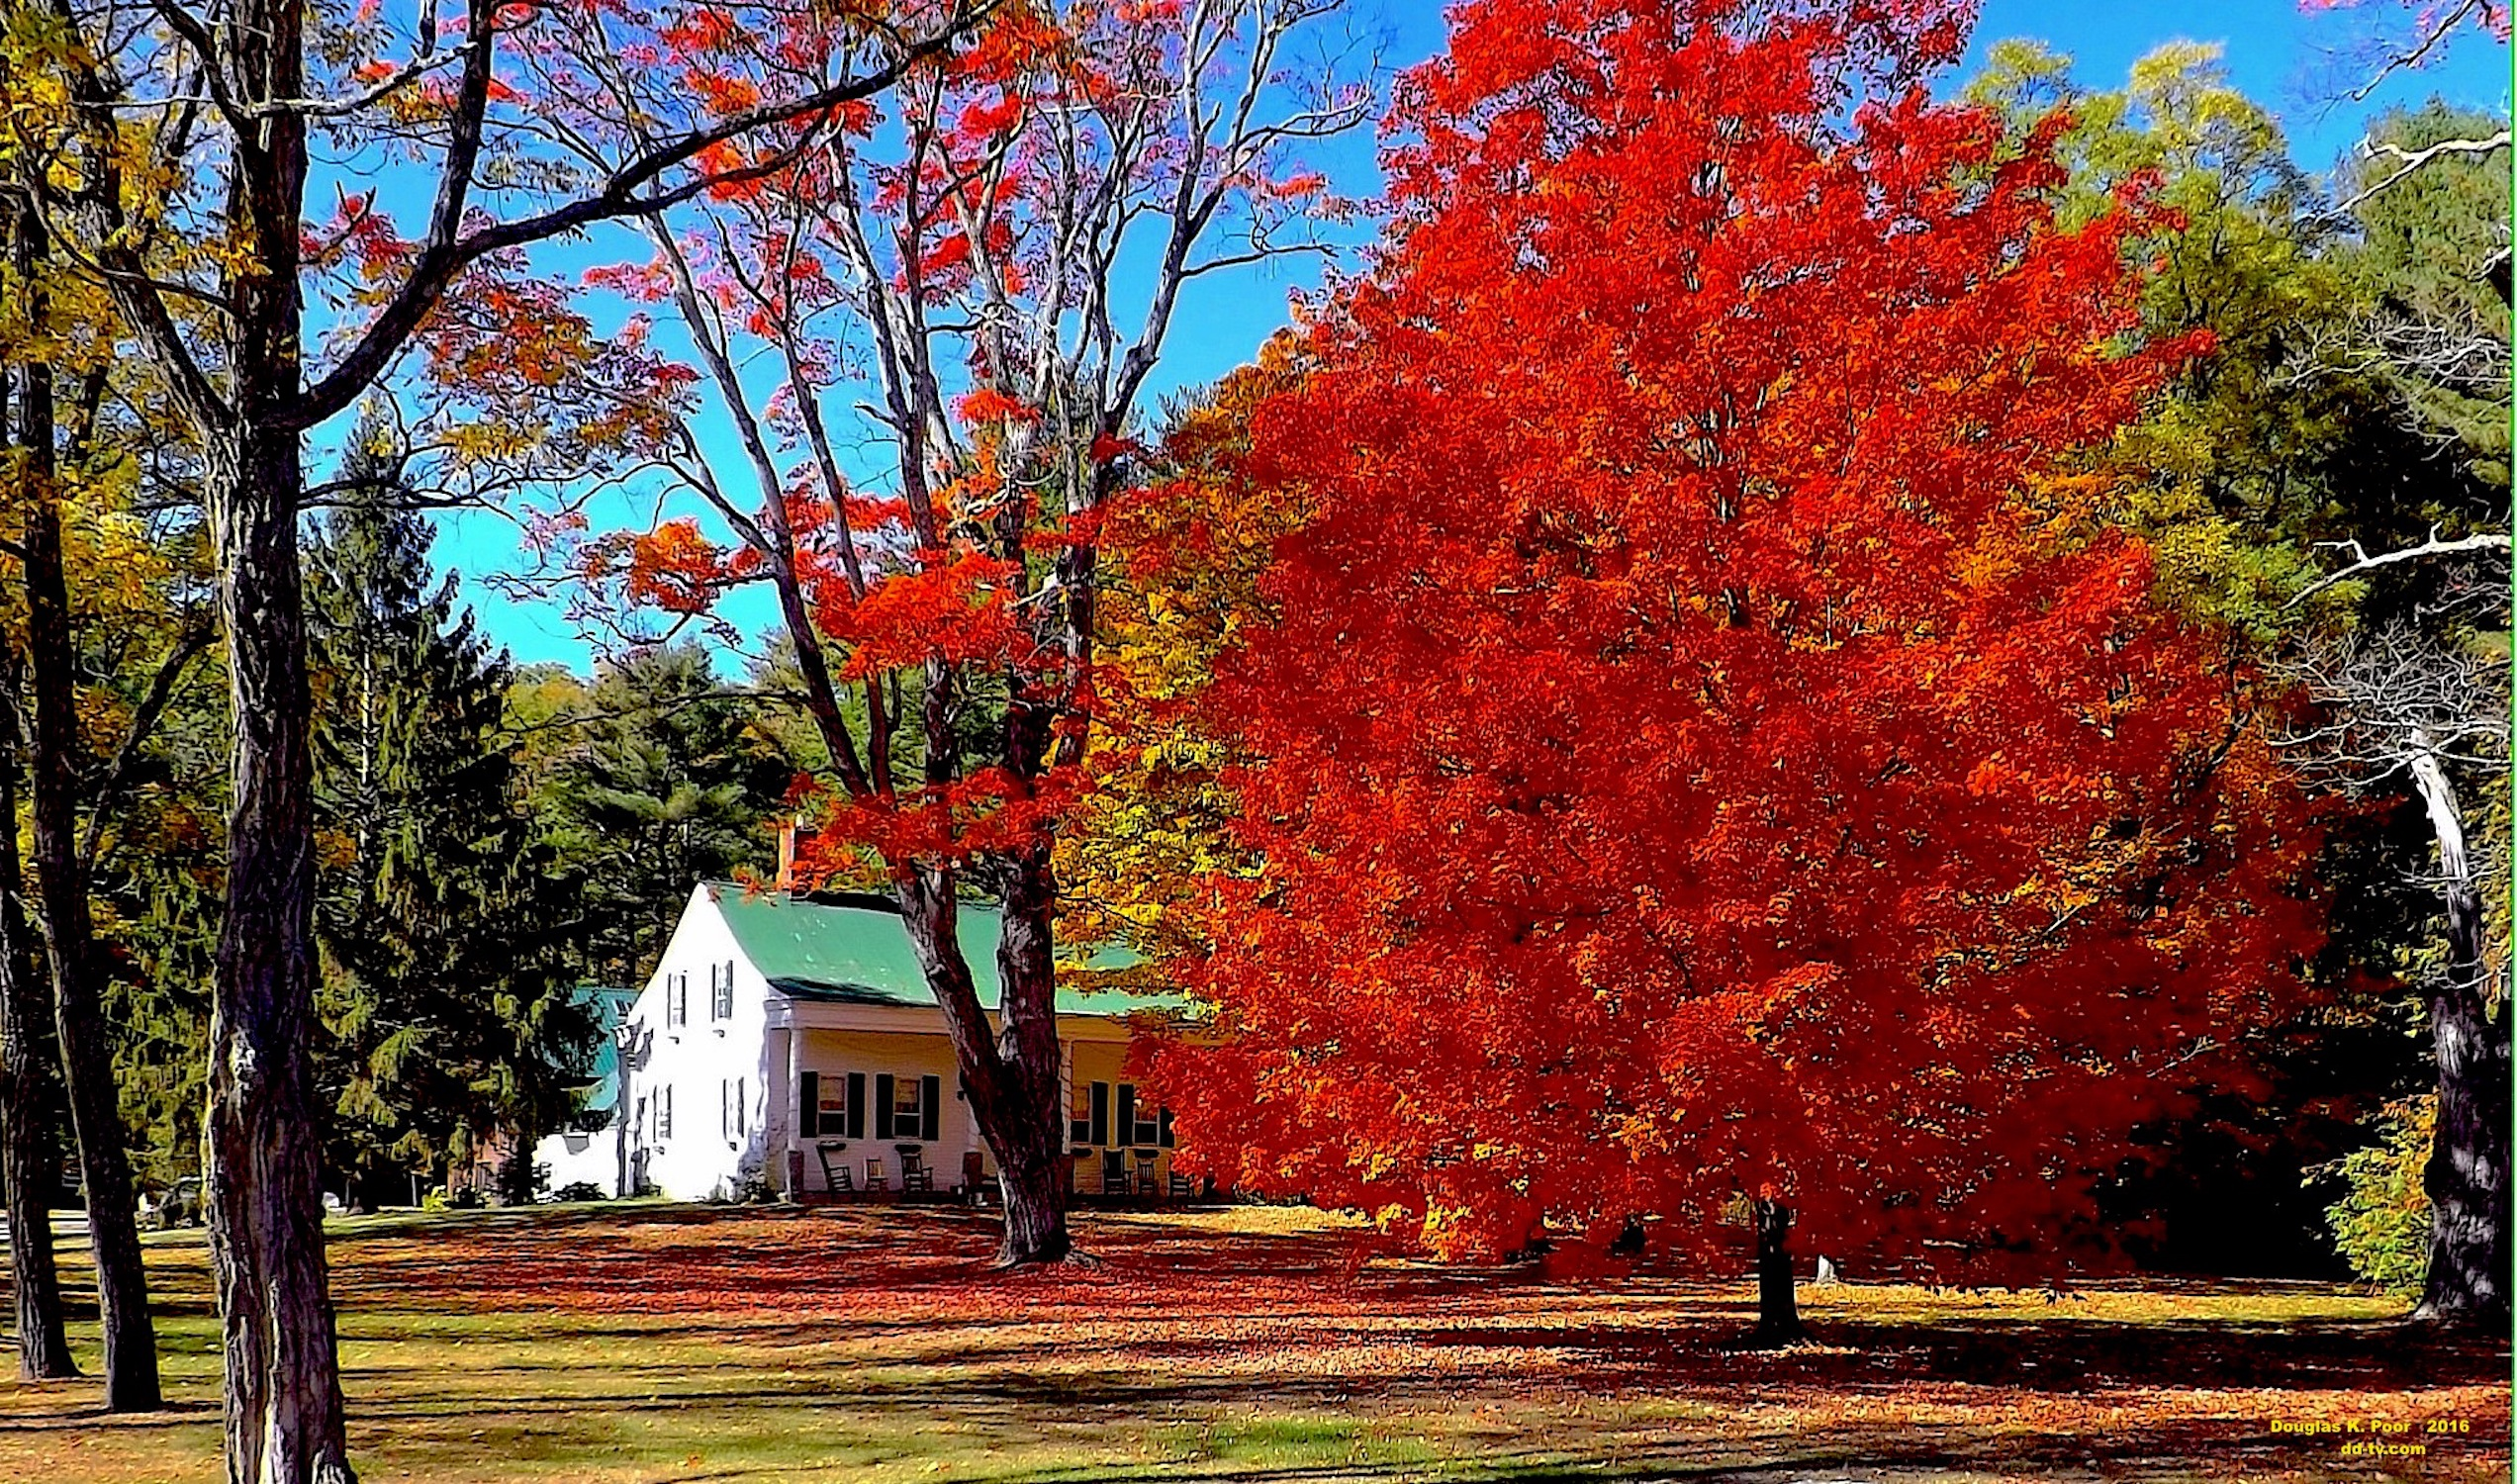 =================-O==========-RED-MAPLE-WHITE-HOUSE-smaller-size==========================================================================================================-RED-MAPLE-WHITE-HOUSE-smaller-size